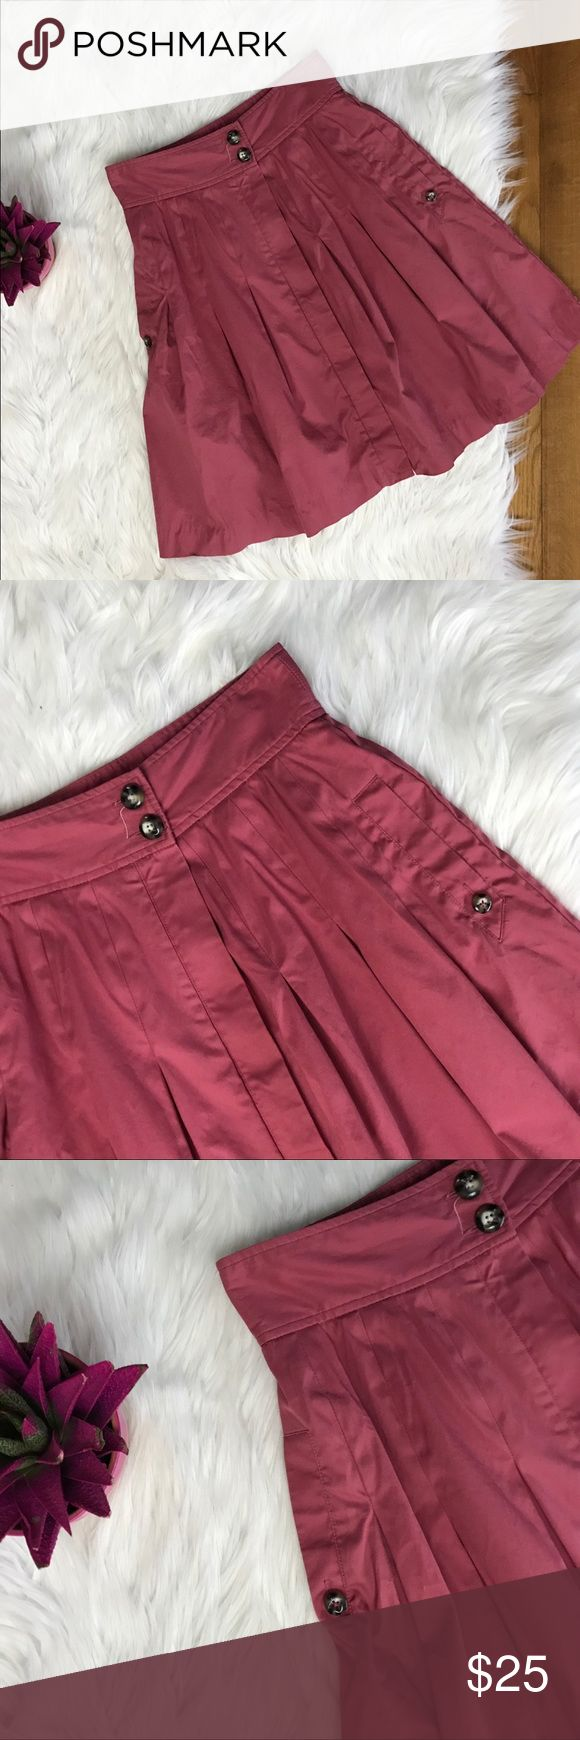 """Anthro's Fei Pleated A-Line Pink Skirt Fei Anthropologie Pleated A-Line Pink Cotton Blend Women's Skirt Pockets Size 8  Overall condition is good; some access threading & a very small/light marking on the front of the skirt (4th pictured)  *Front of the skirt buttons on the top and zips from the front. Zipper is covered by flap.  98% Cotton 2% Spandex  Dry Clean  Approximately: 21.5"""" Long 28"""" Circumference of waist  *Smoke free/pet free home Anthropologie Skirts A-Line or Full"""